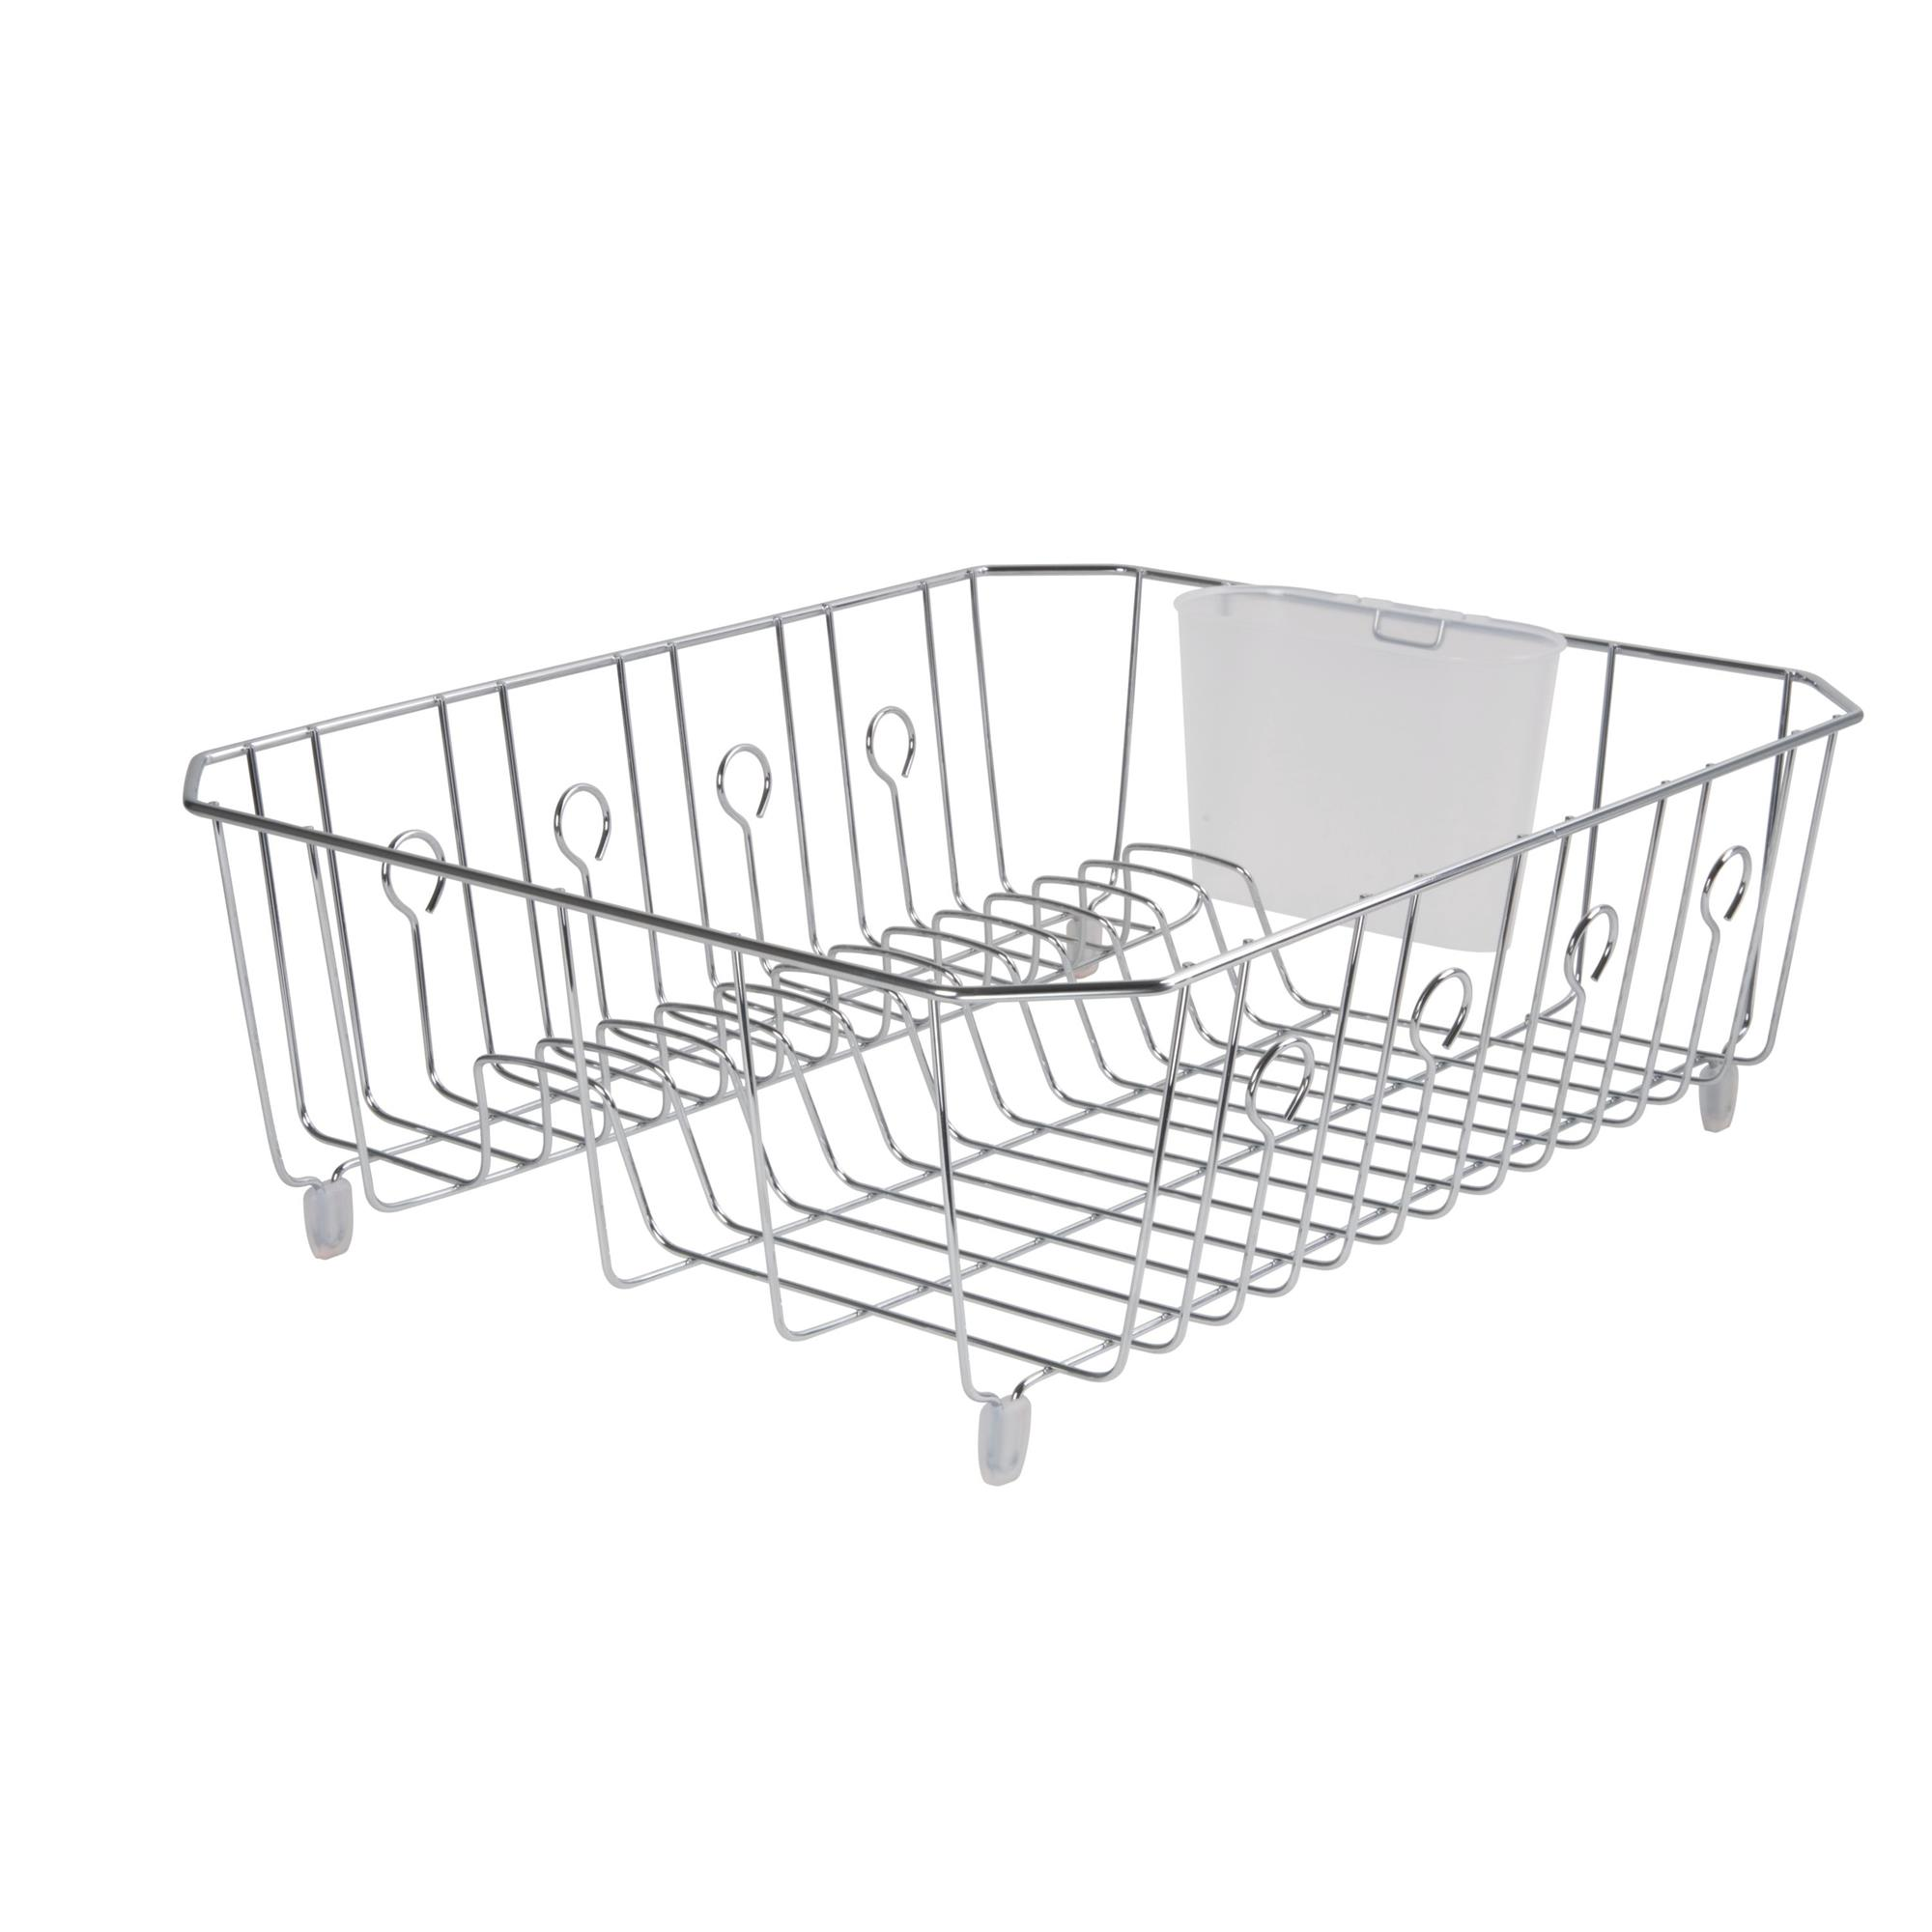 rubbermaid large wire dish drying rack with tray